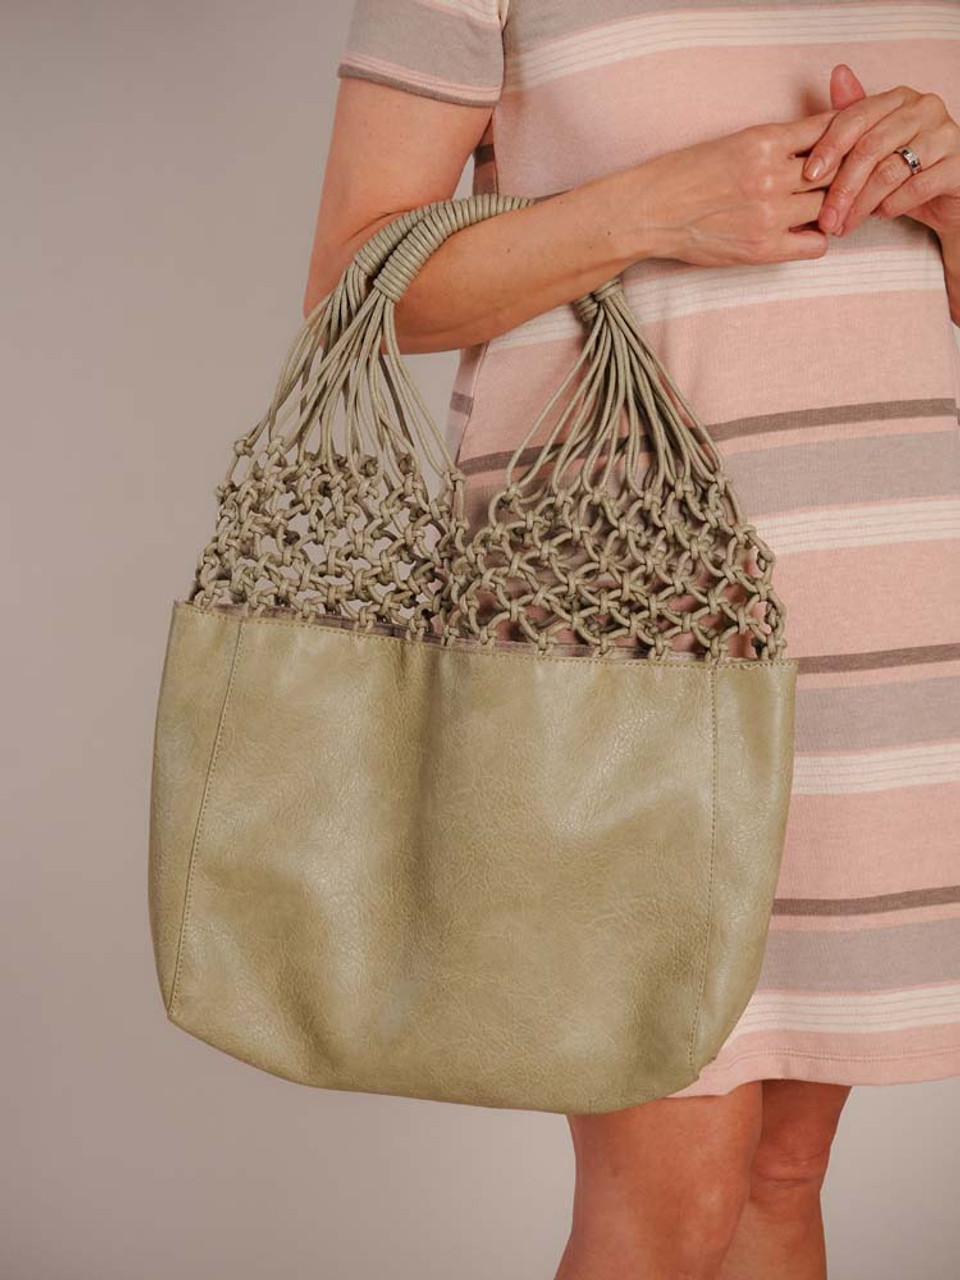 This go-to summer bag has a perfect netting and vegan leather combination! Includes an inner bag with two slip pockets, zipper pocket, and zipper close. Tote and inner bag are both fully lined.